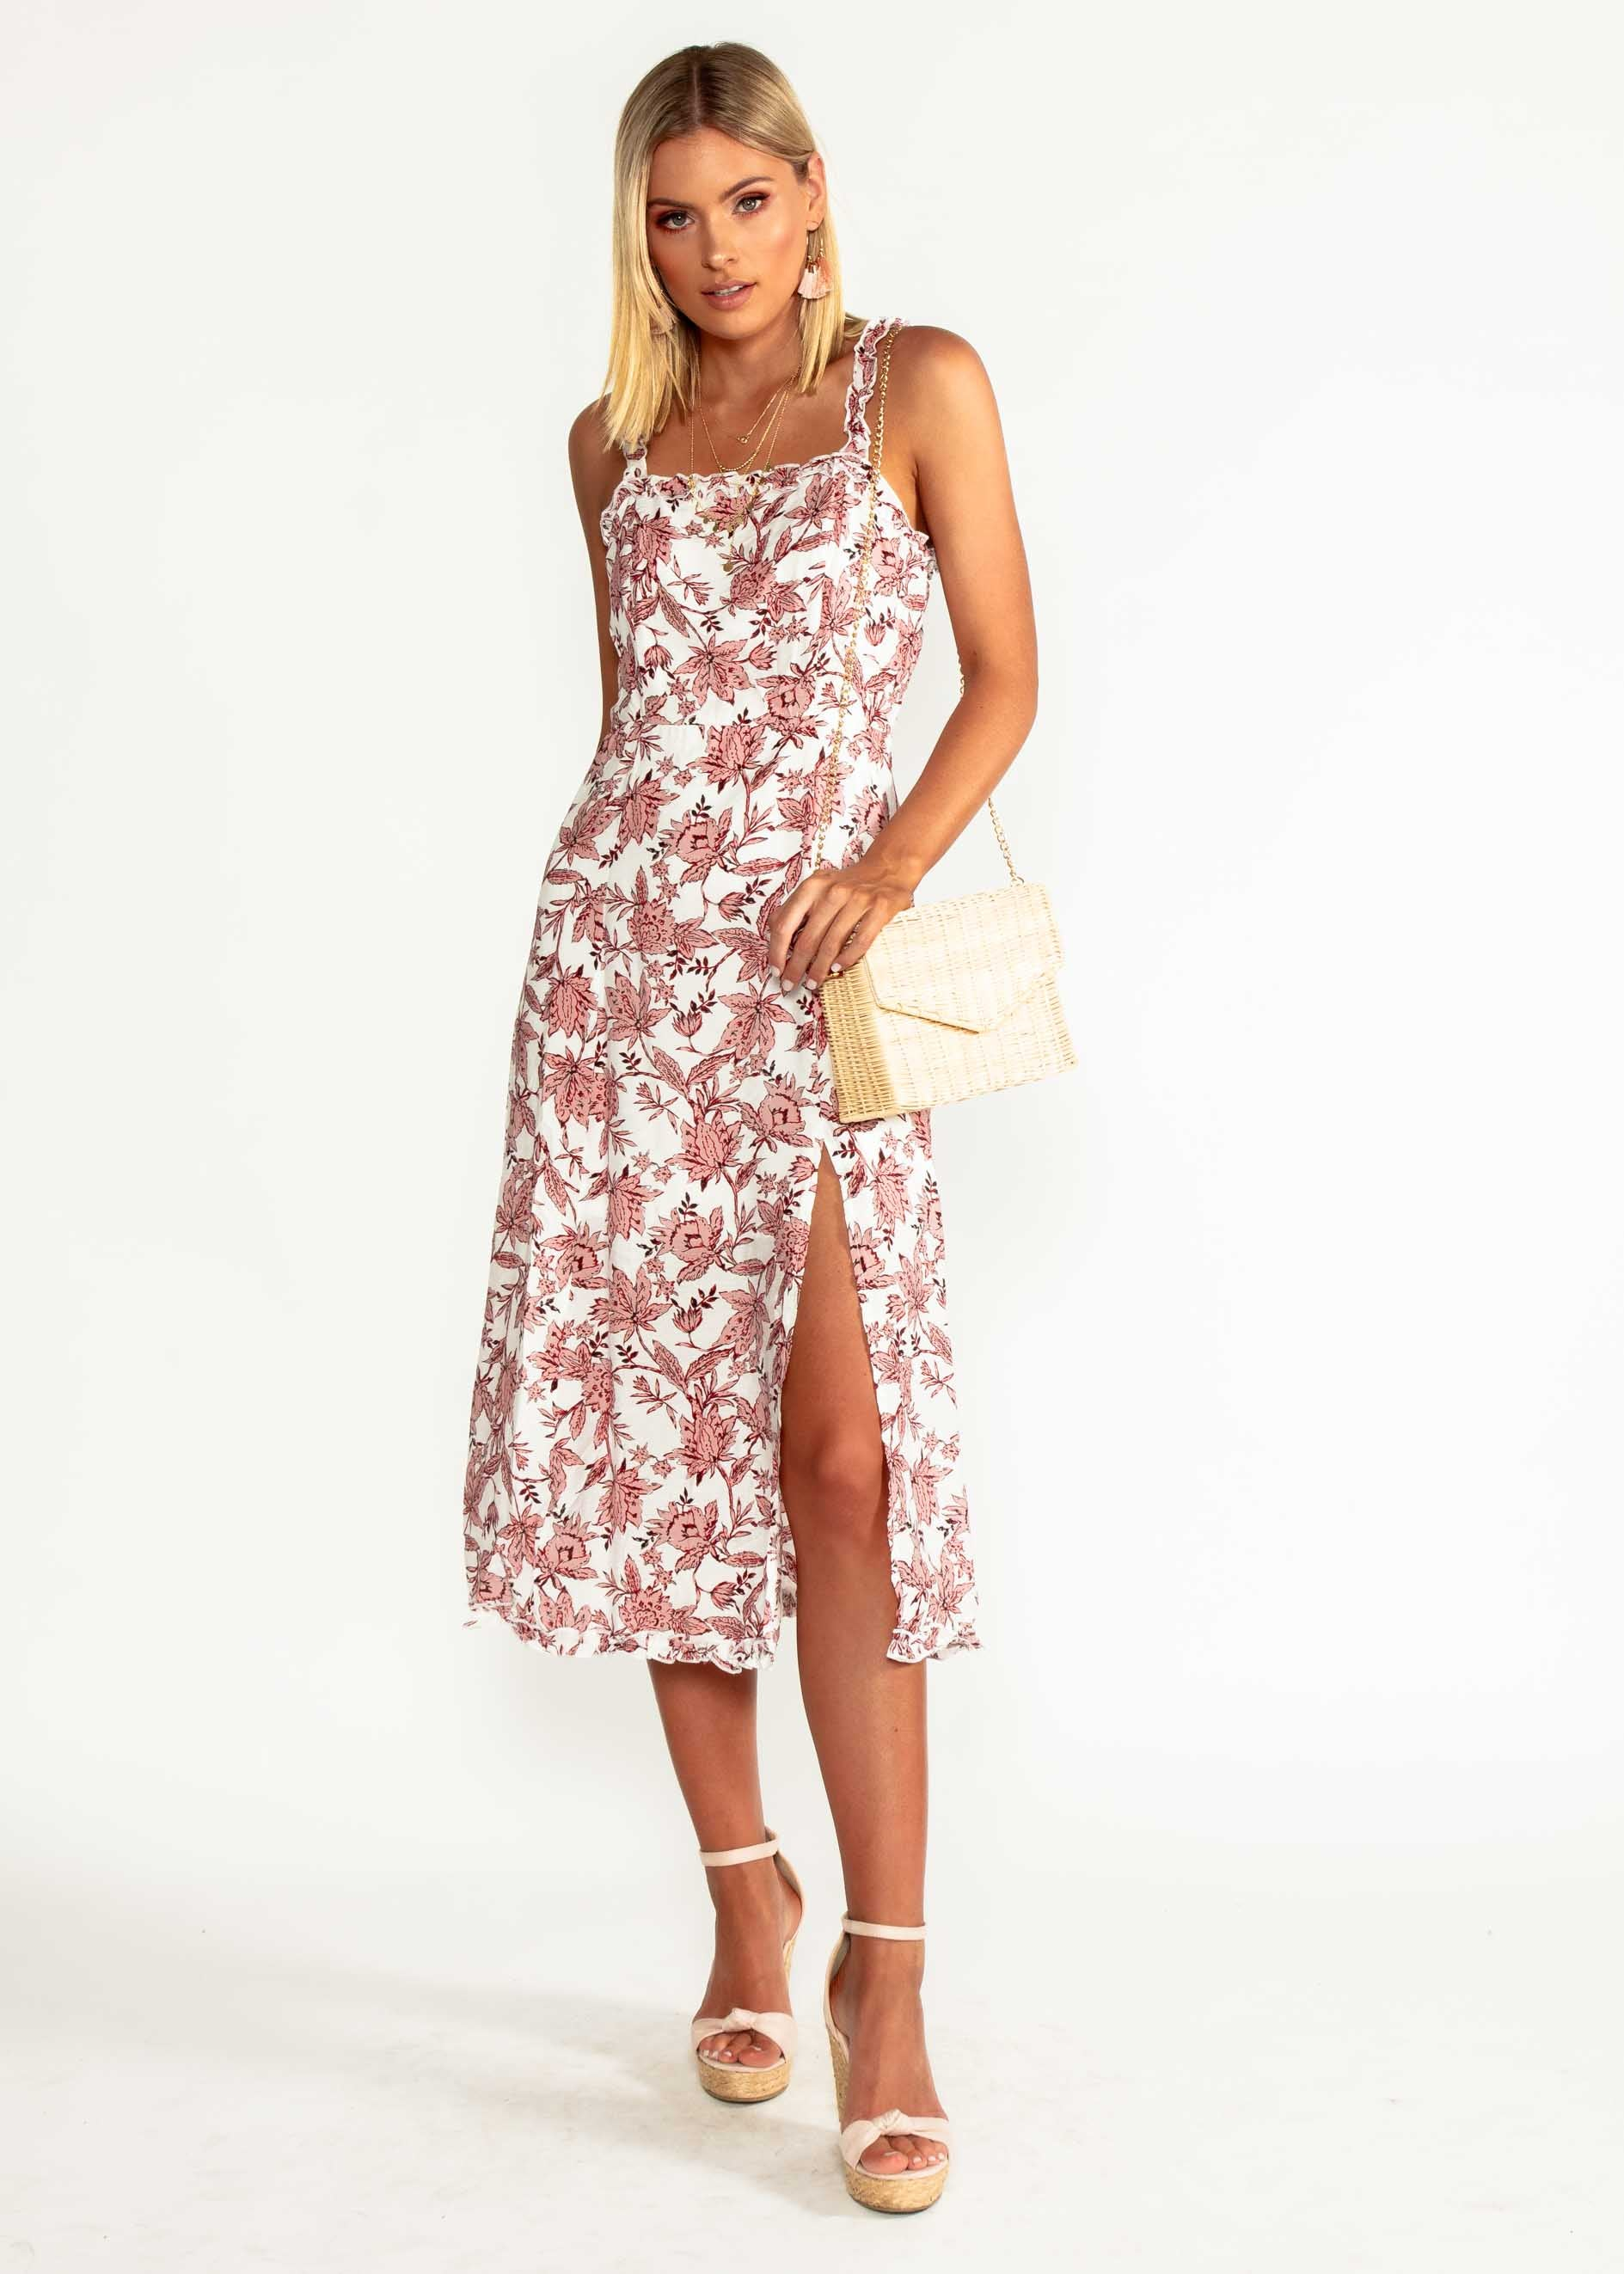 Wildest Dreams Midi Dress - Blush Floral